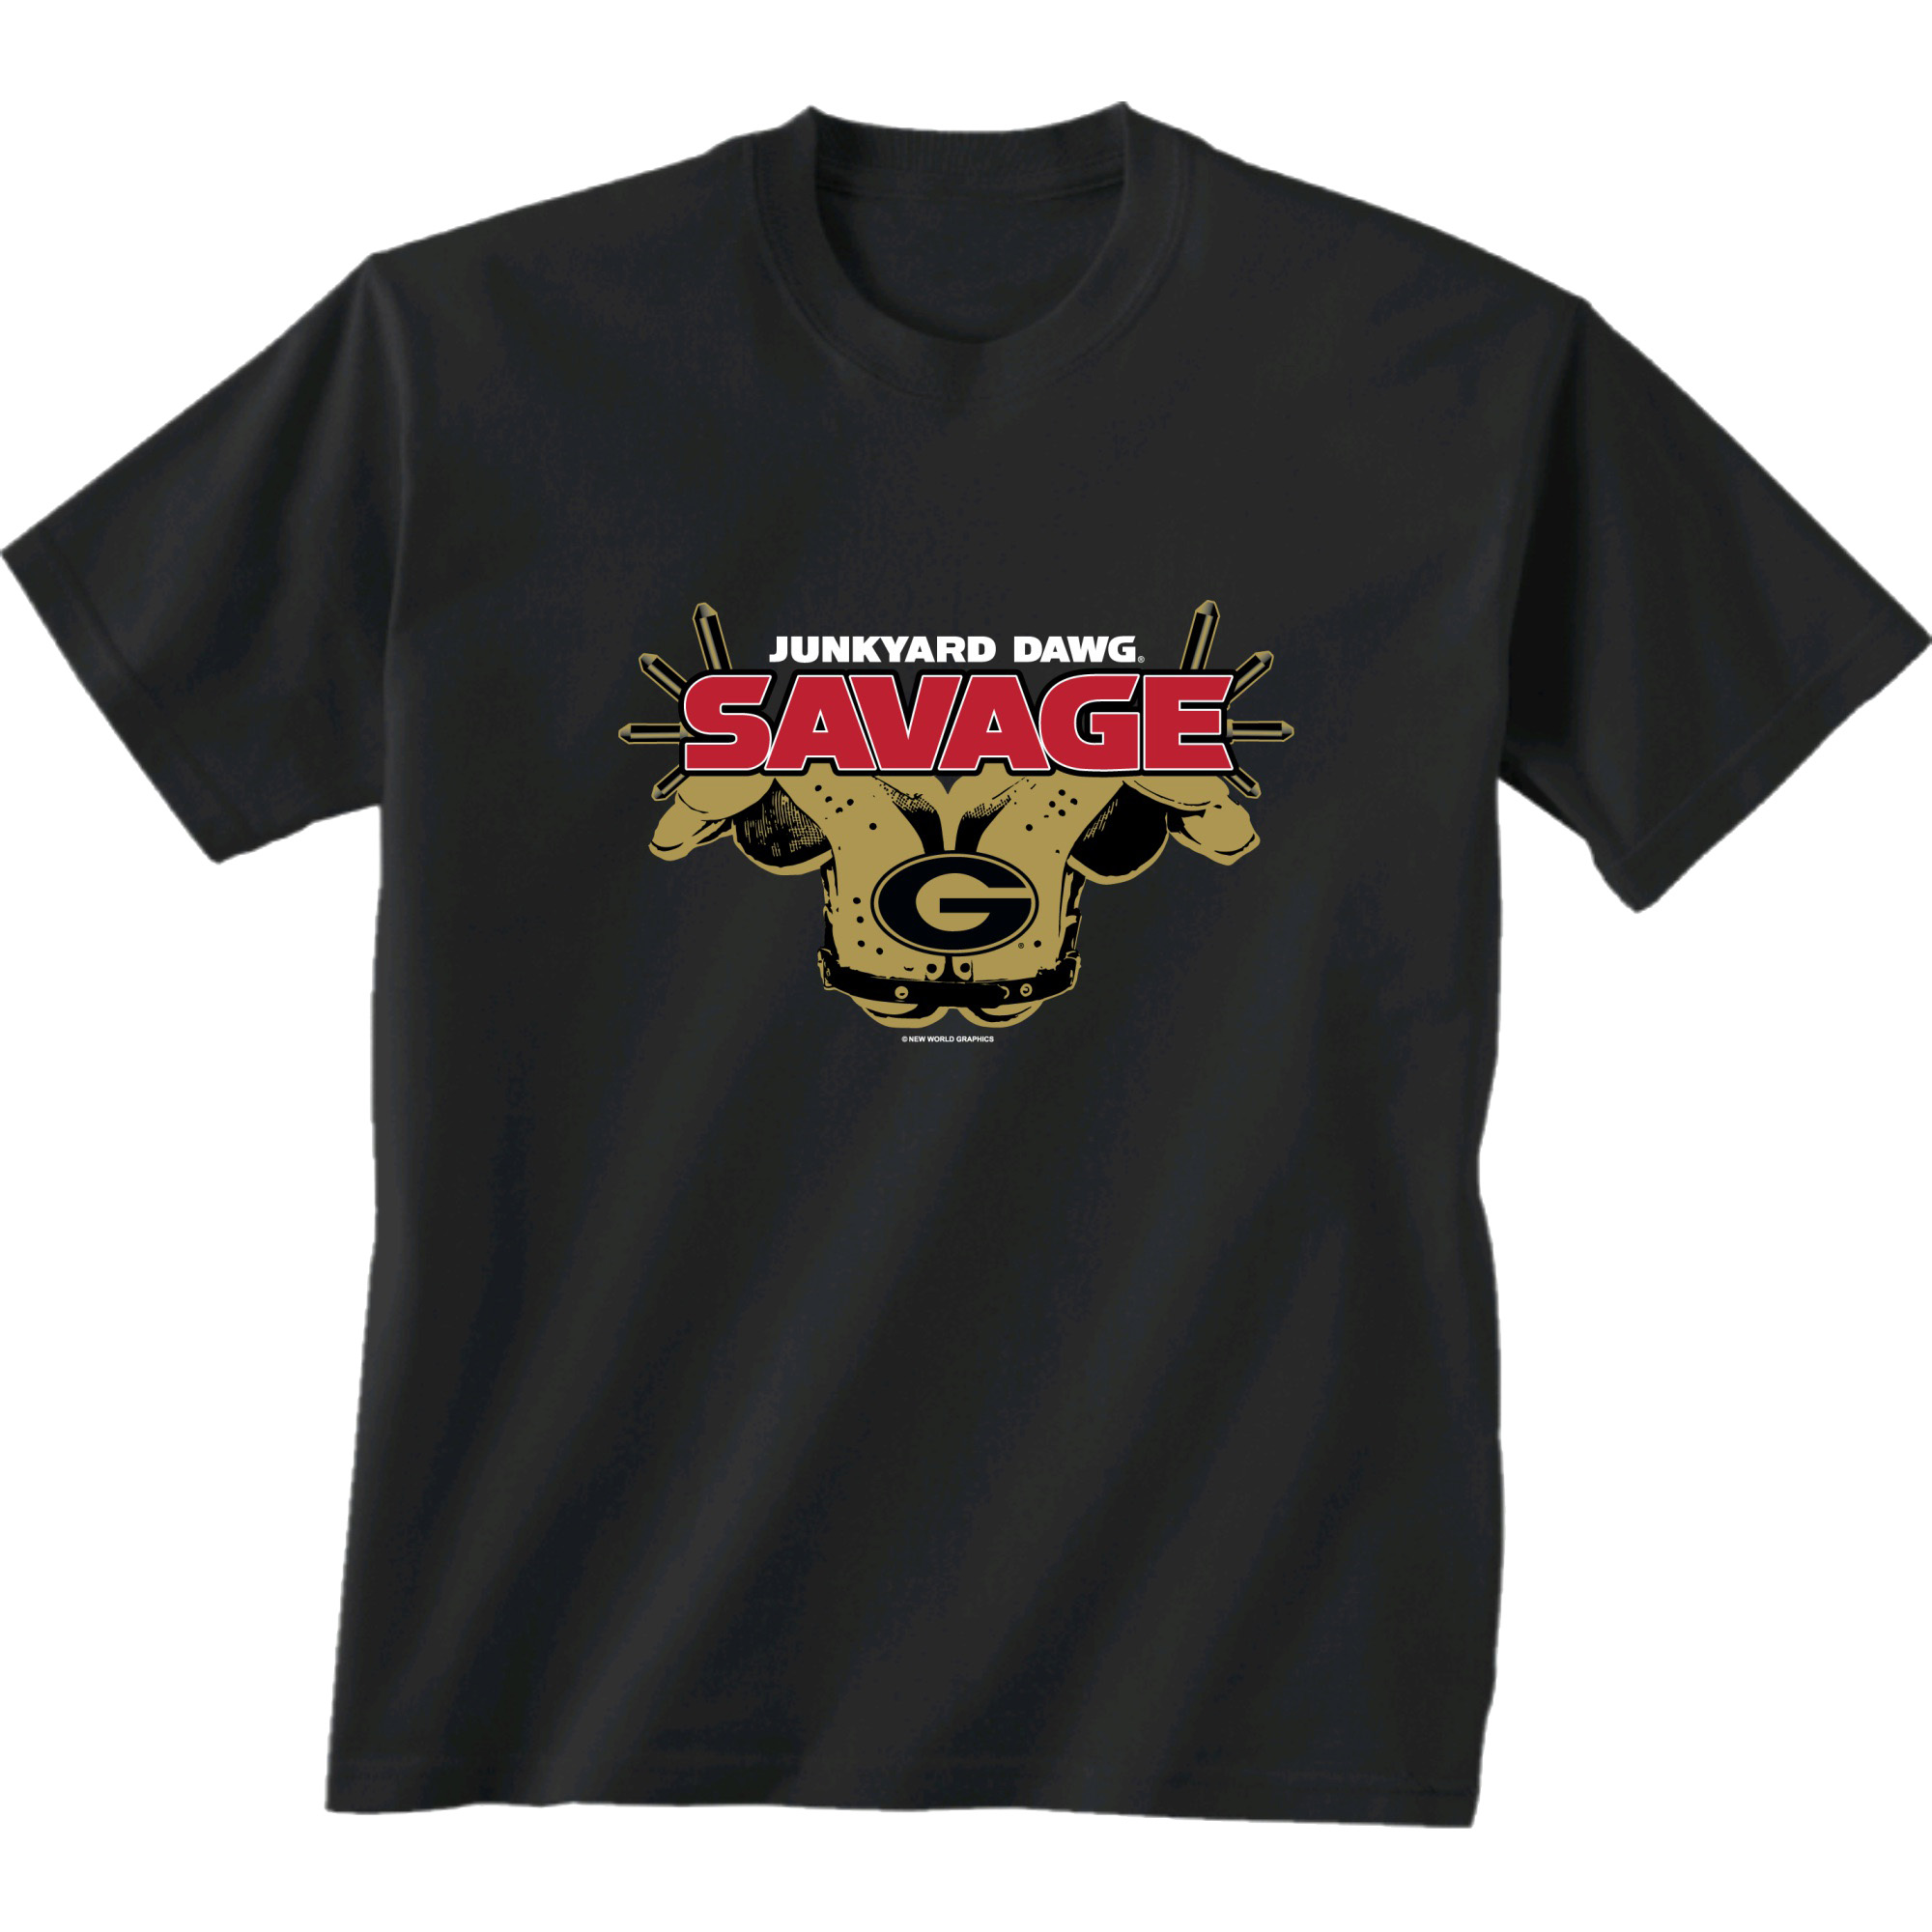 Georgia Bulldogs Savage Junkyard Dawg T-shirt